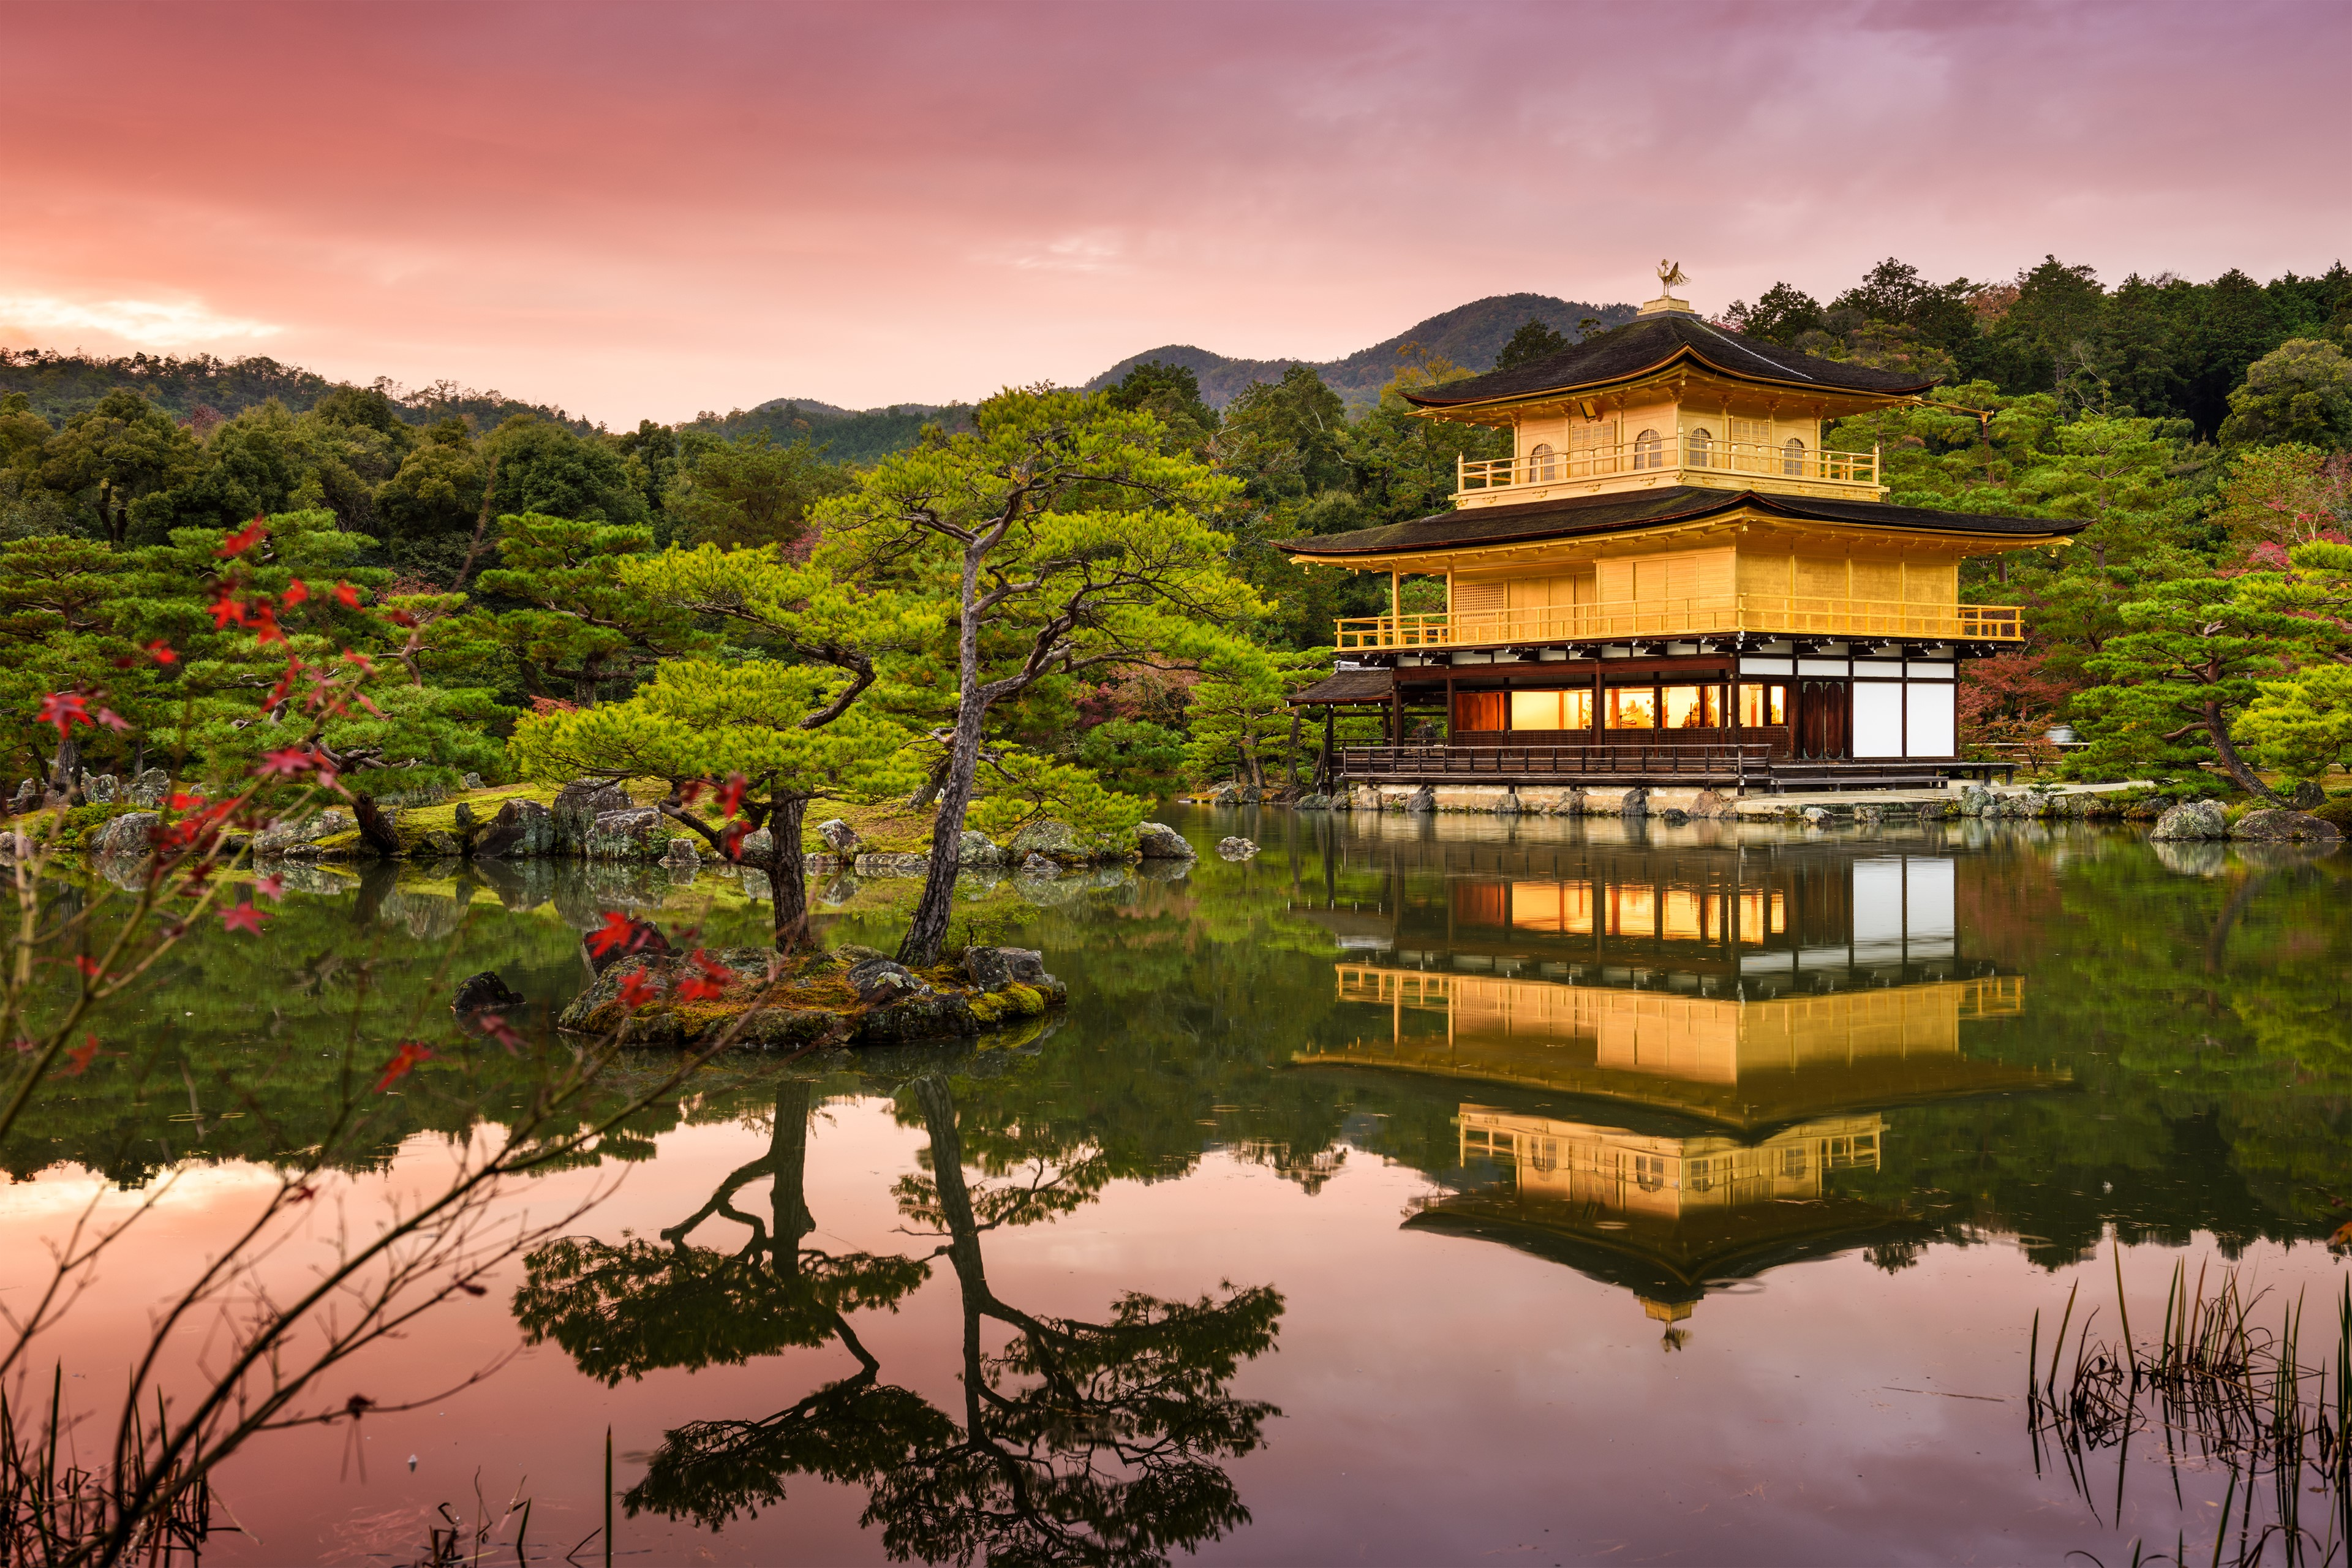 The Golden Pavilion at Dusk, Kyoto